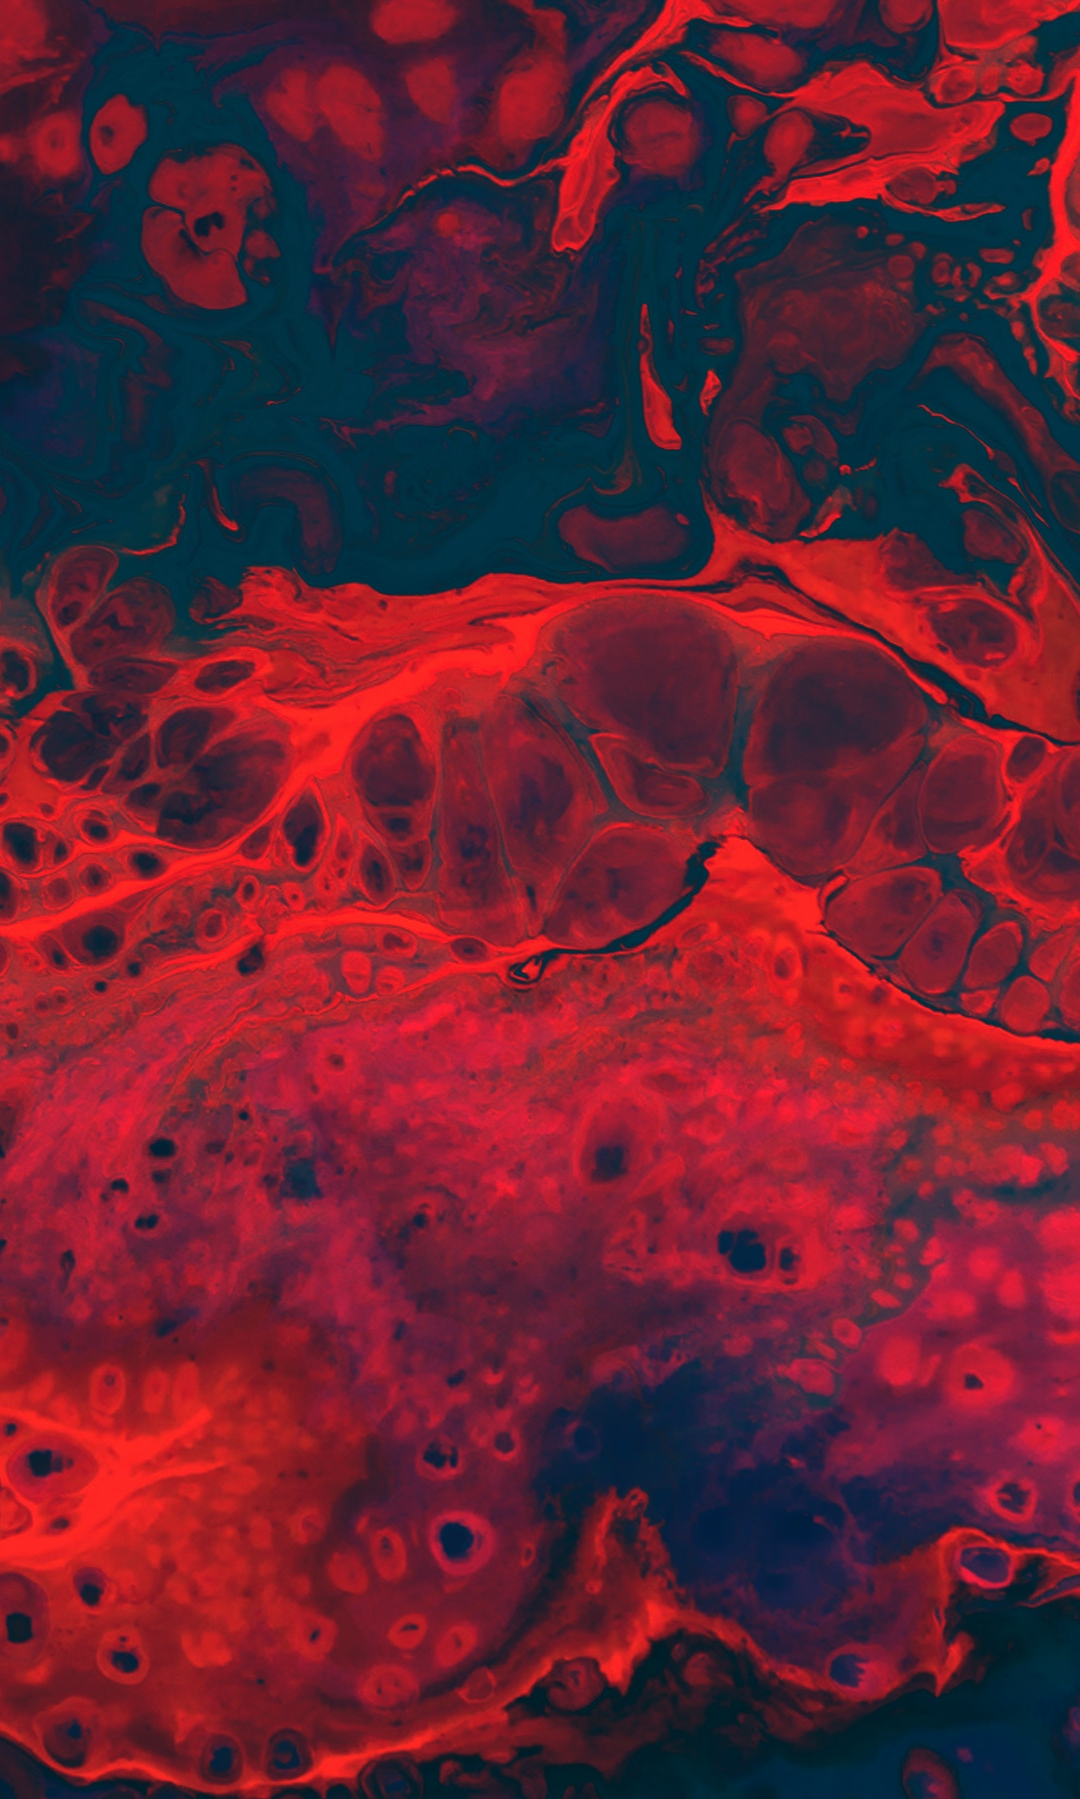 Blood Vein Texture iPhone Wallpaper